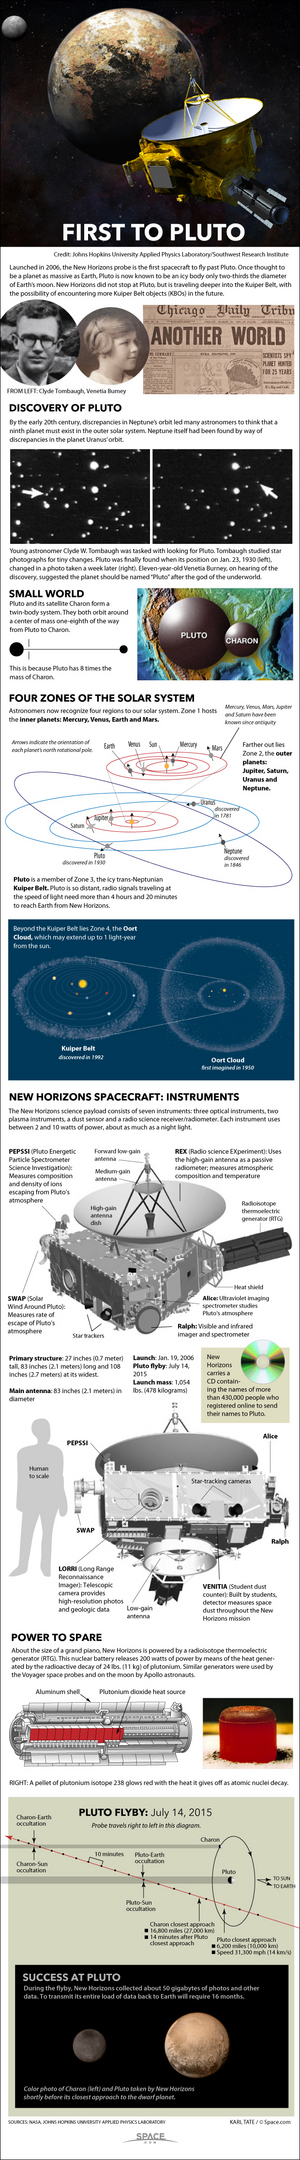 "New Horizons becomes the first probe to explore Pluto in mid-2015. <a href=""http://www.space.com/27989-new-horizons-pluto-mission-explained-infographic.html"">See how the New Horizons mission to Pluto works in our full infographic here</a>."